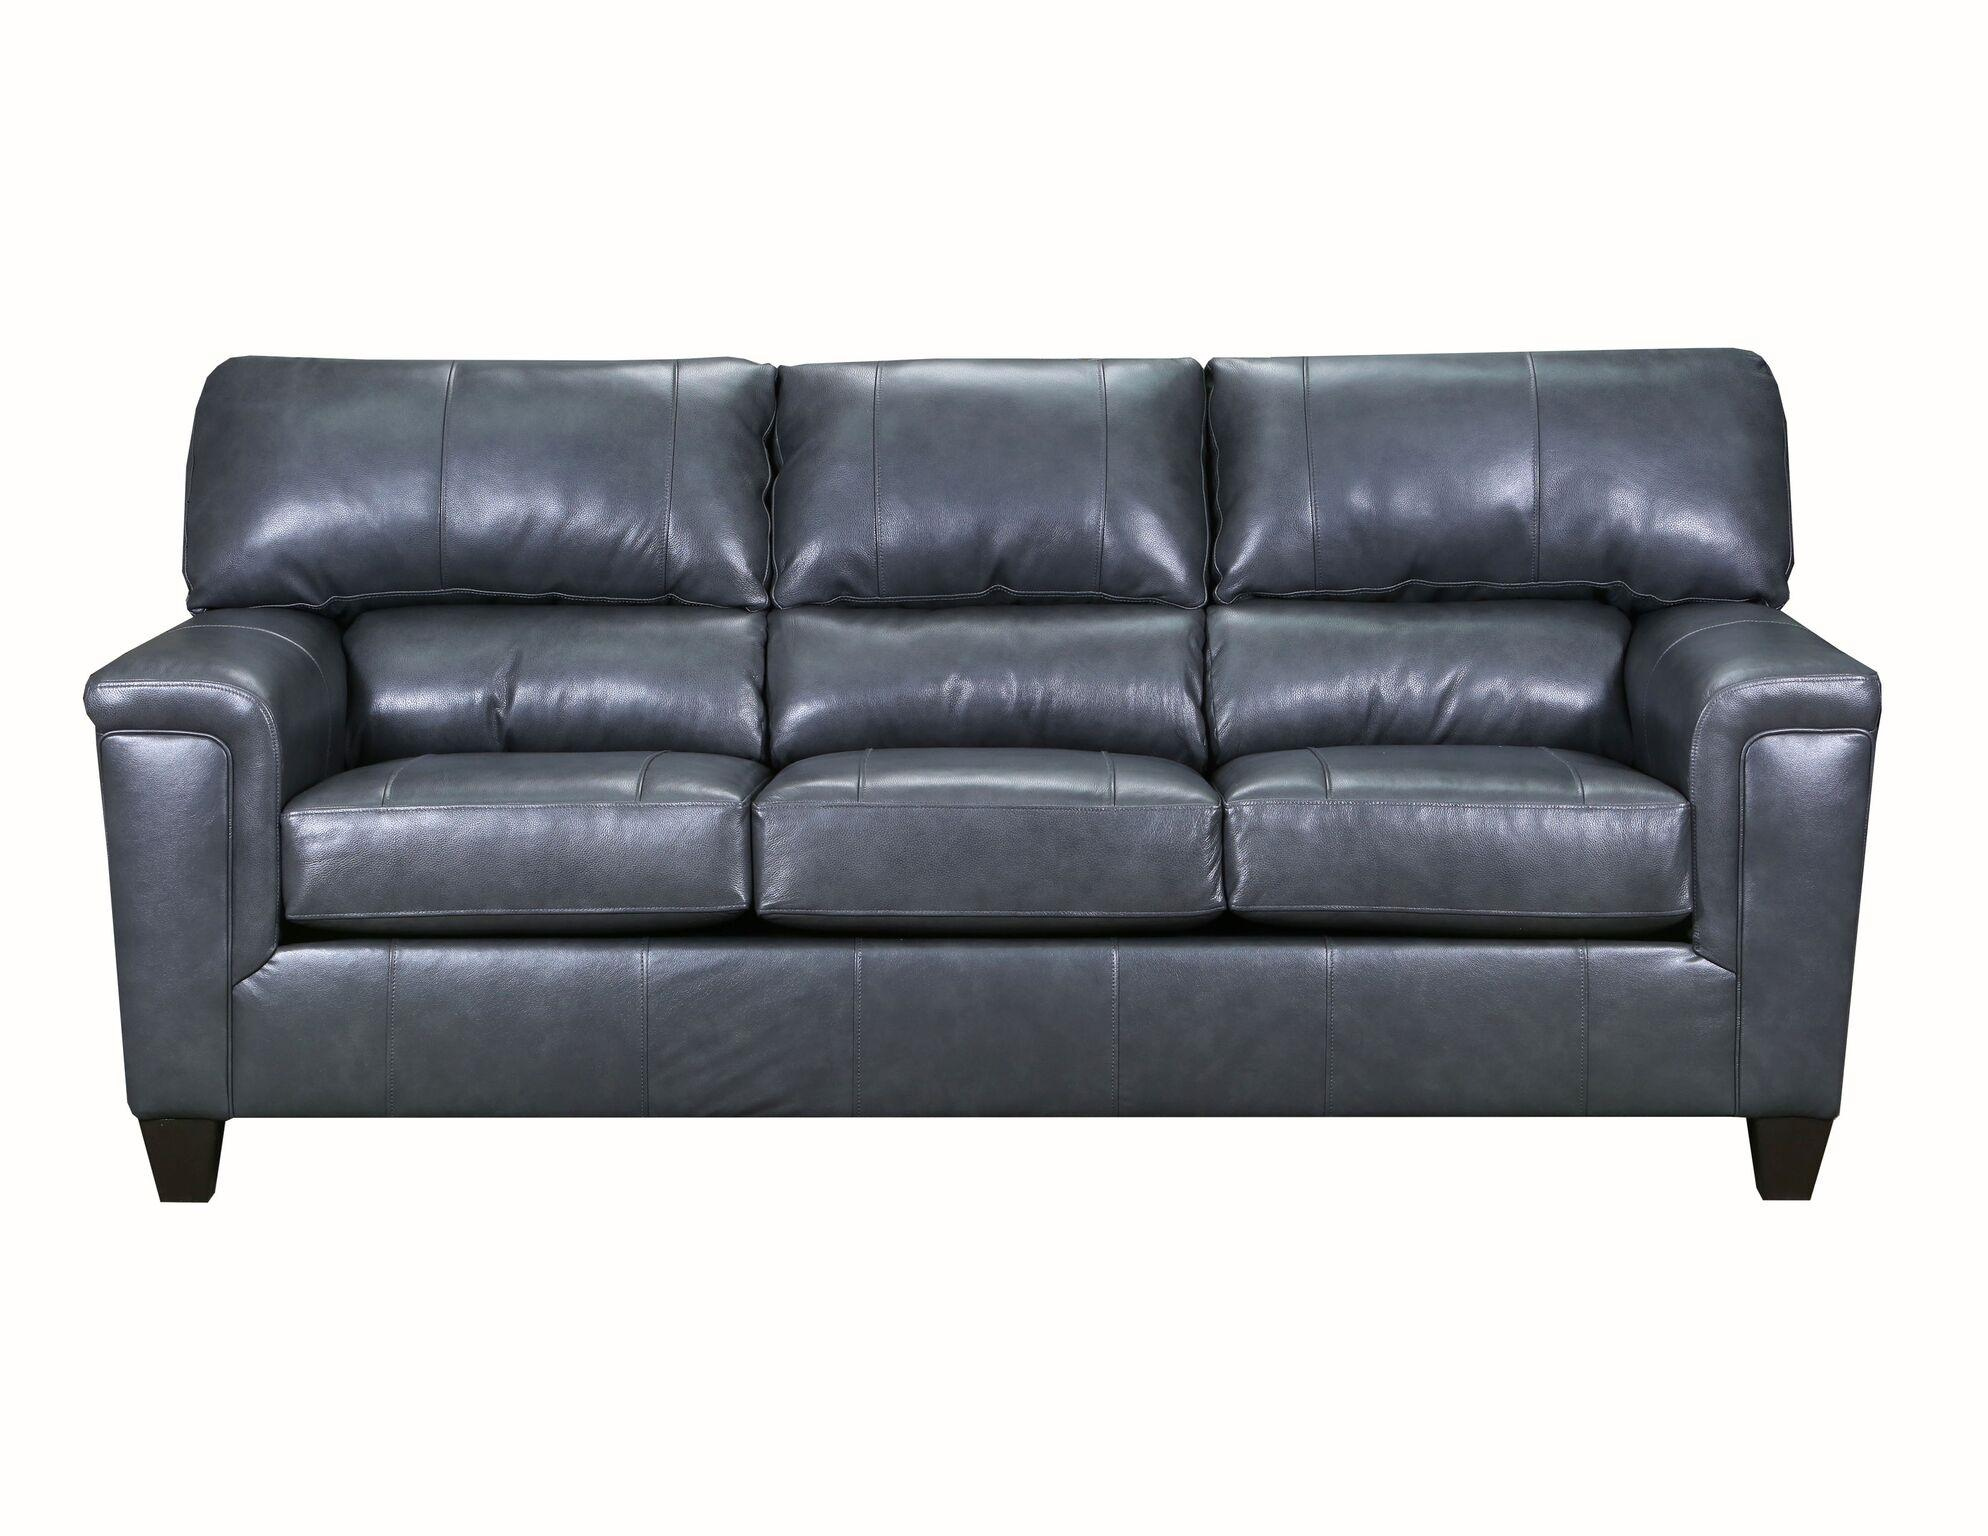 Lane Furniture Soft Touch Fog Leather Sofa Click To Enlarge